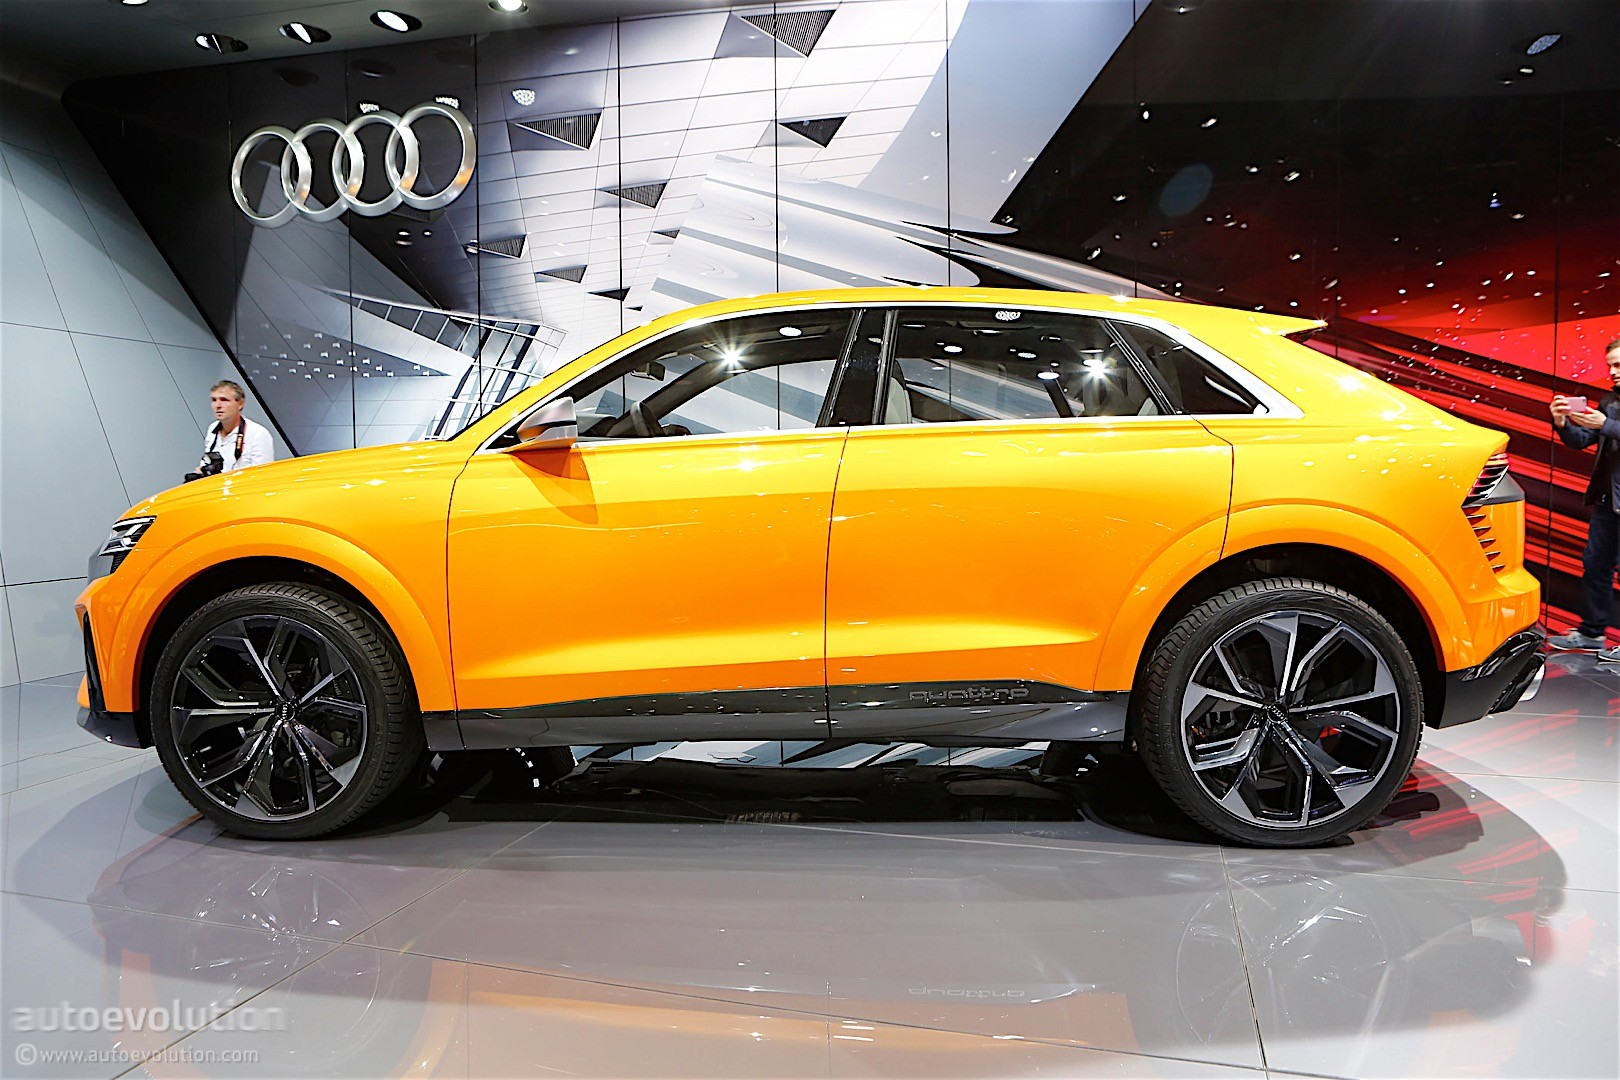 audi q8 halo suv model confirmed q7 platform and prologue concept design autoevolution. Black Bedroom Furniture Sets. Home Design Ideas